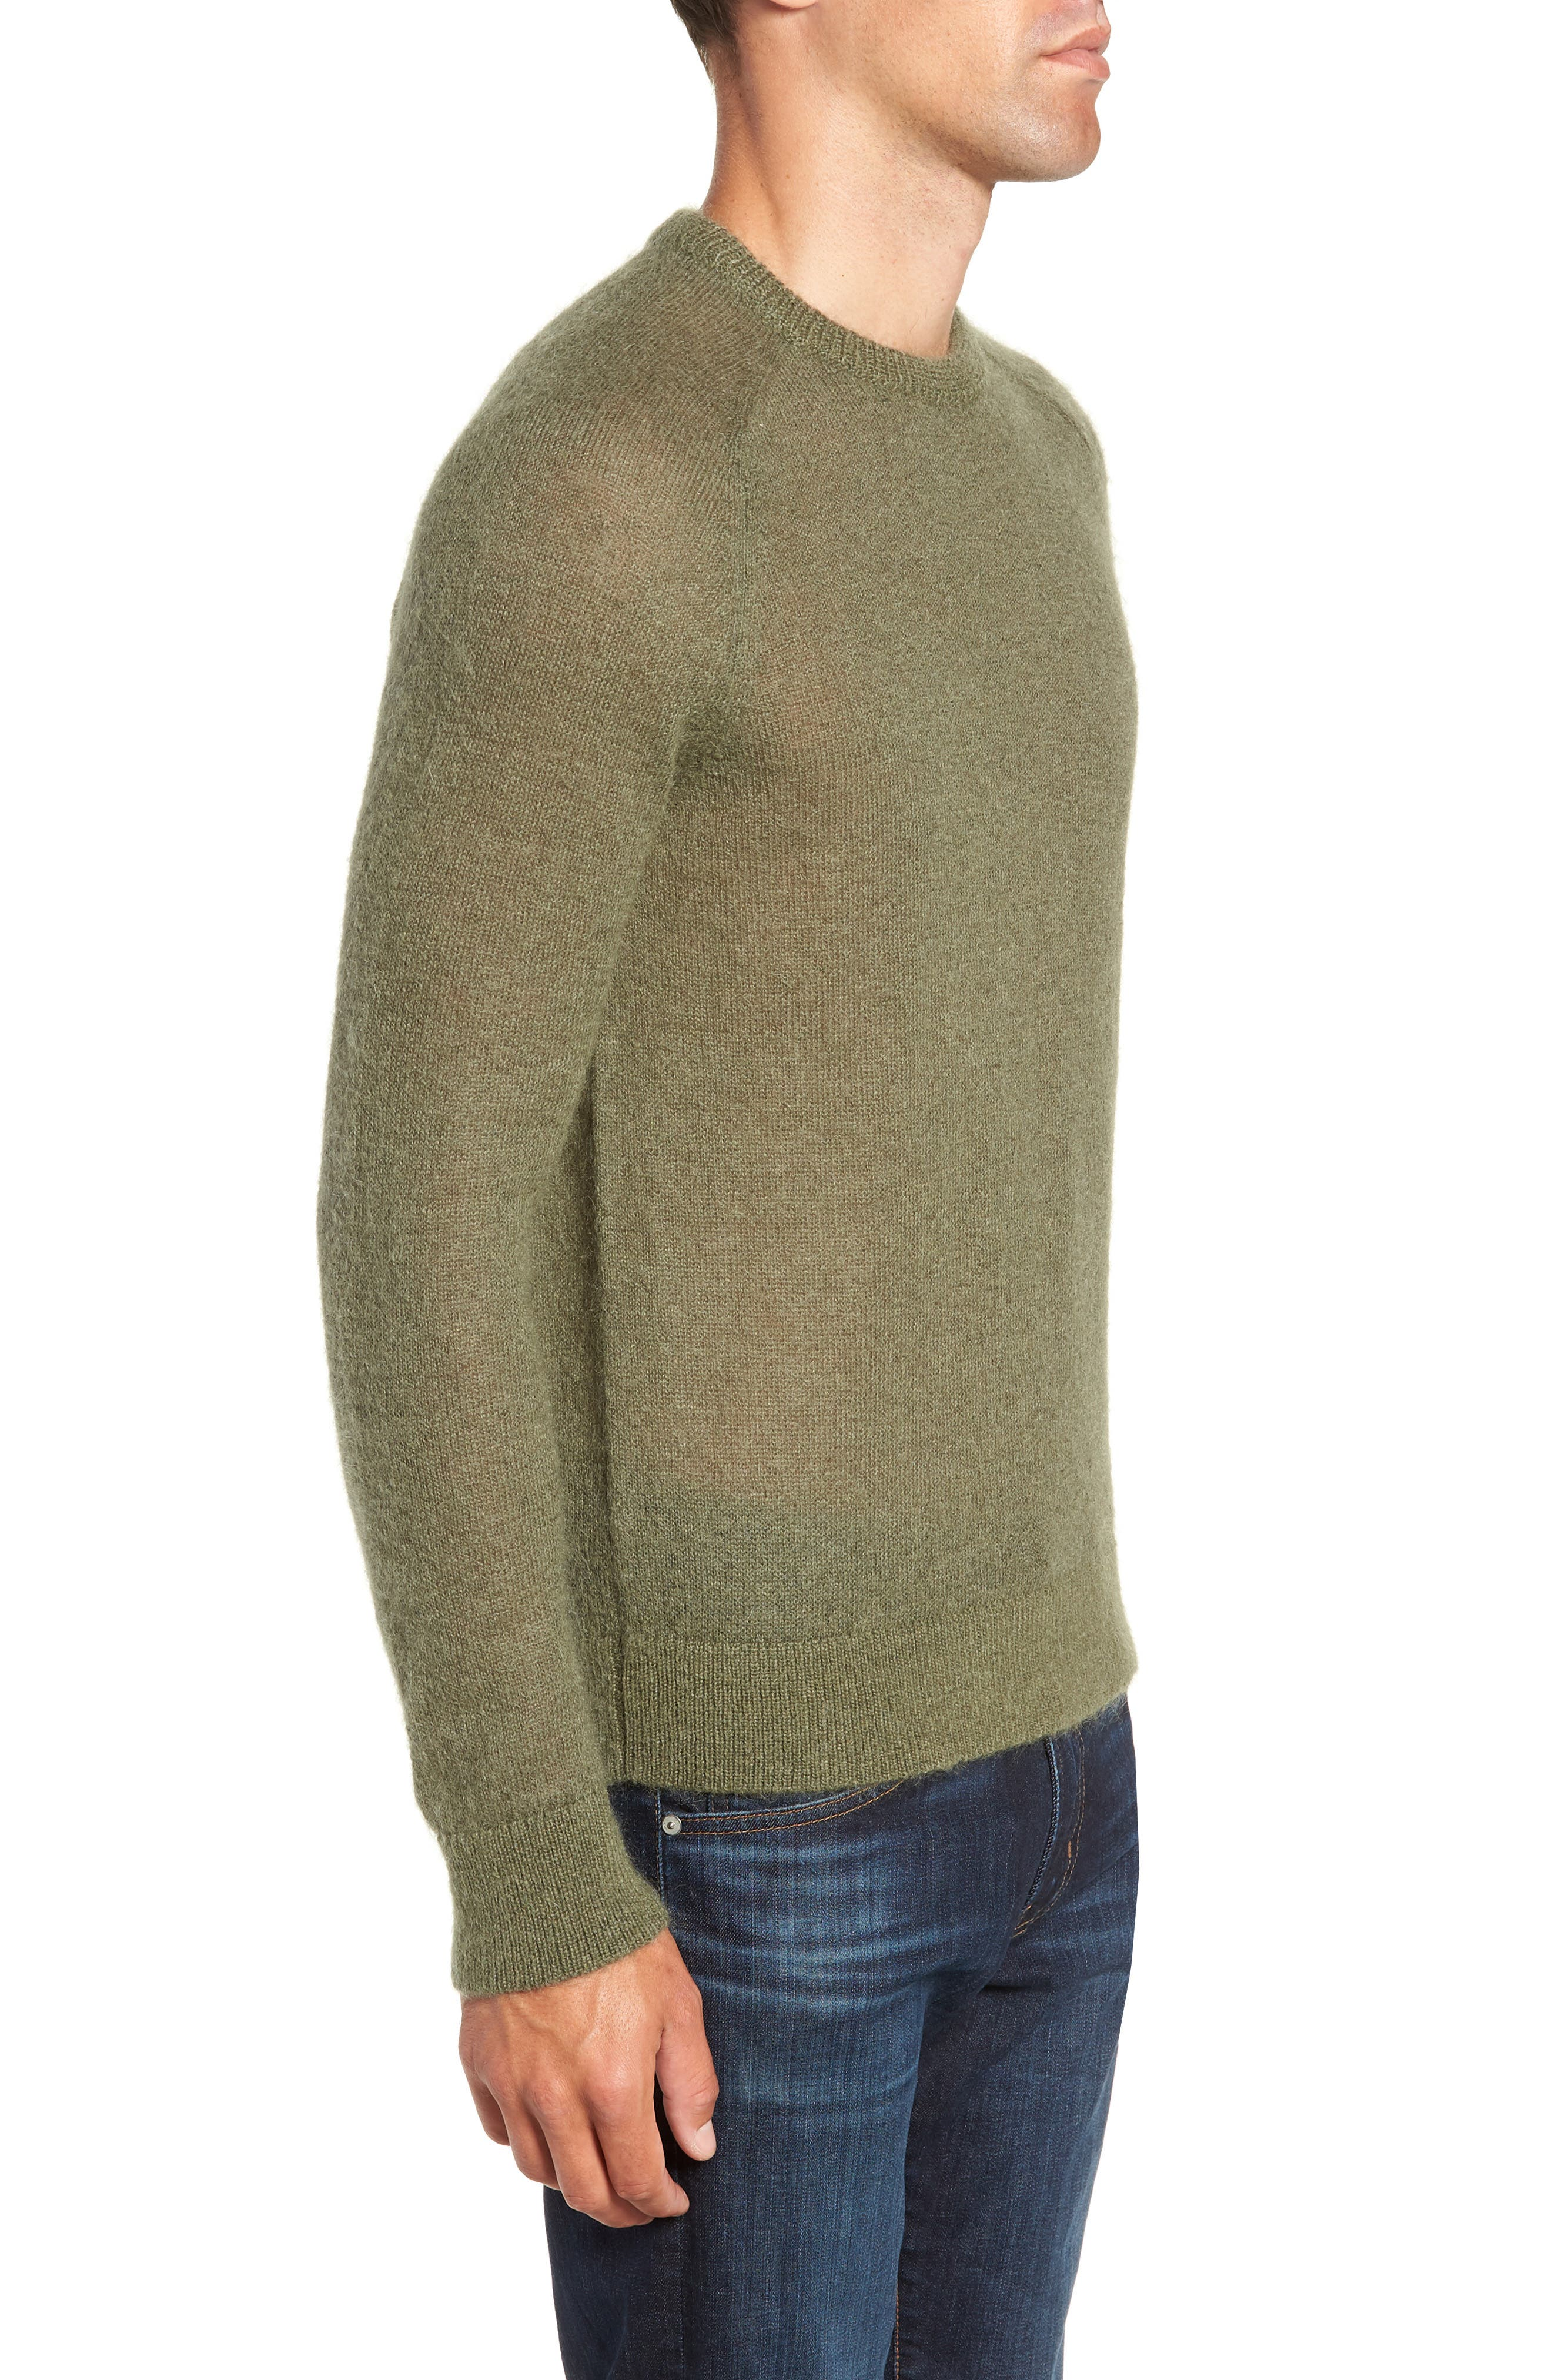 Mohair Blend Crewneck Sweater,                             Alternate thumbnail 3, color,                             DARK OLIVE